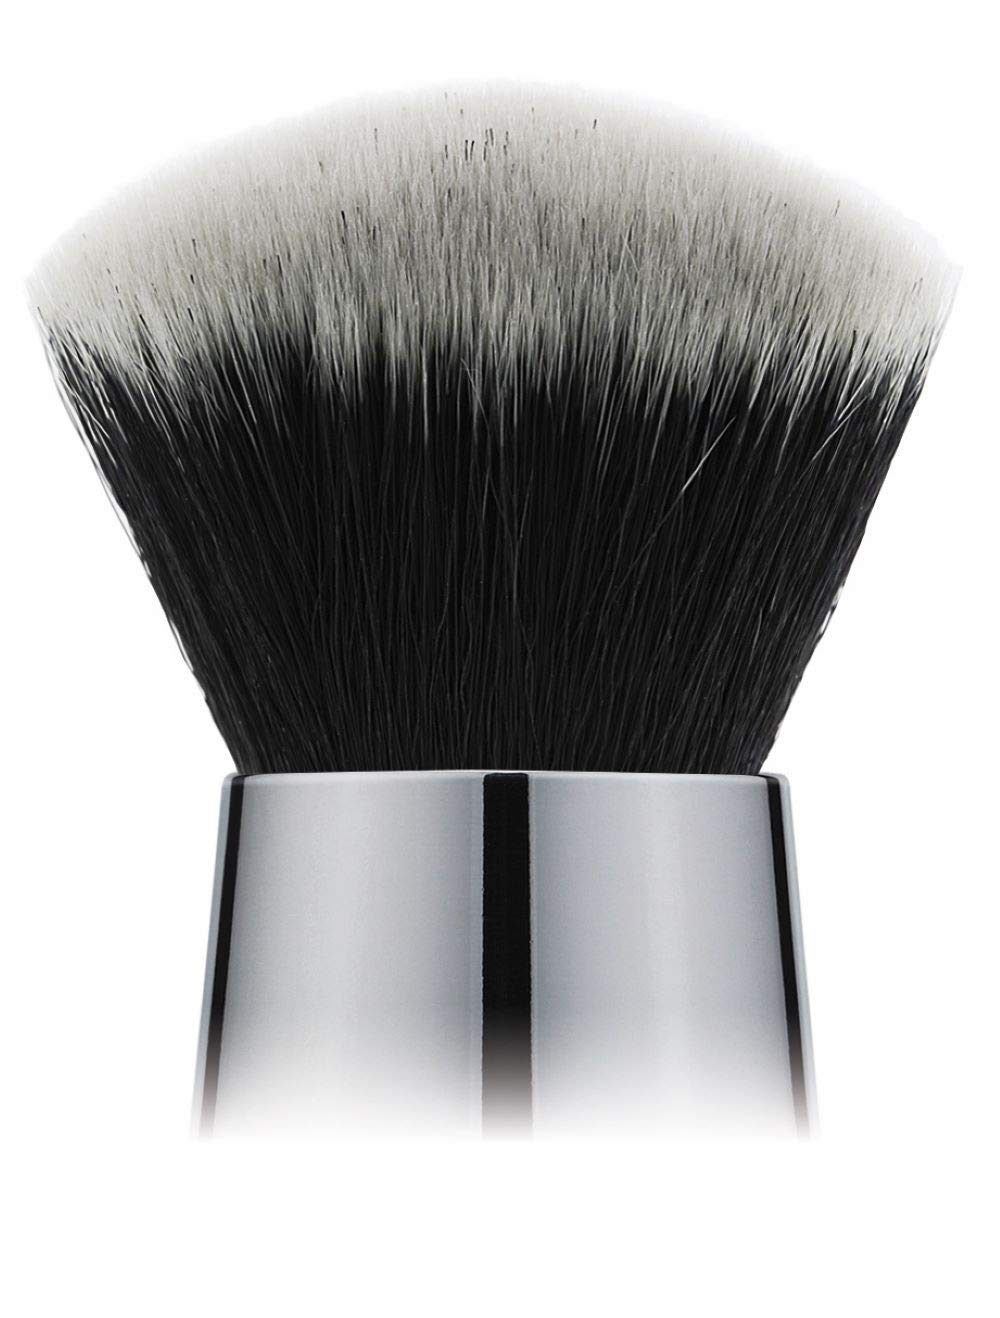 Michael Todd Sonicblend Antimicrobial Sonic Foundation Makeup Brush Replacement Head